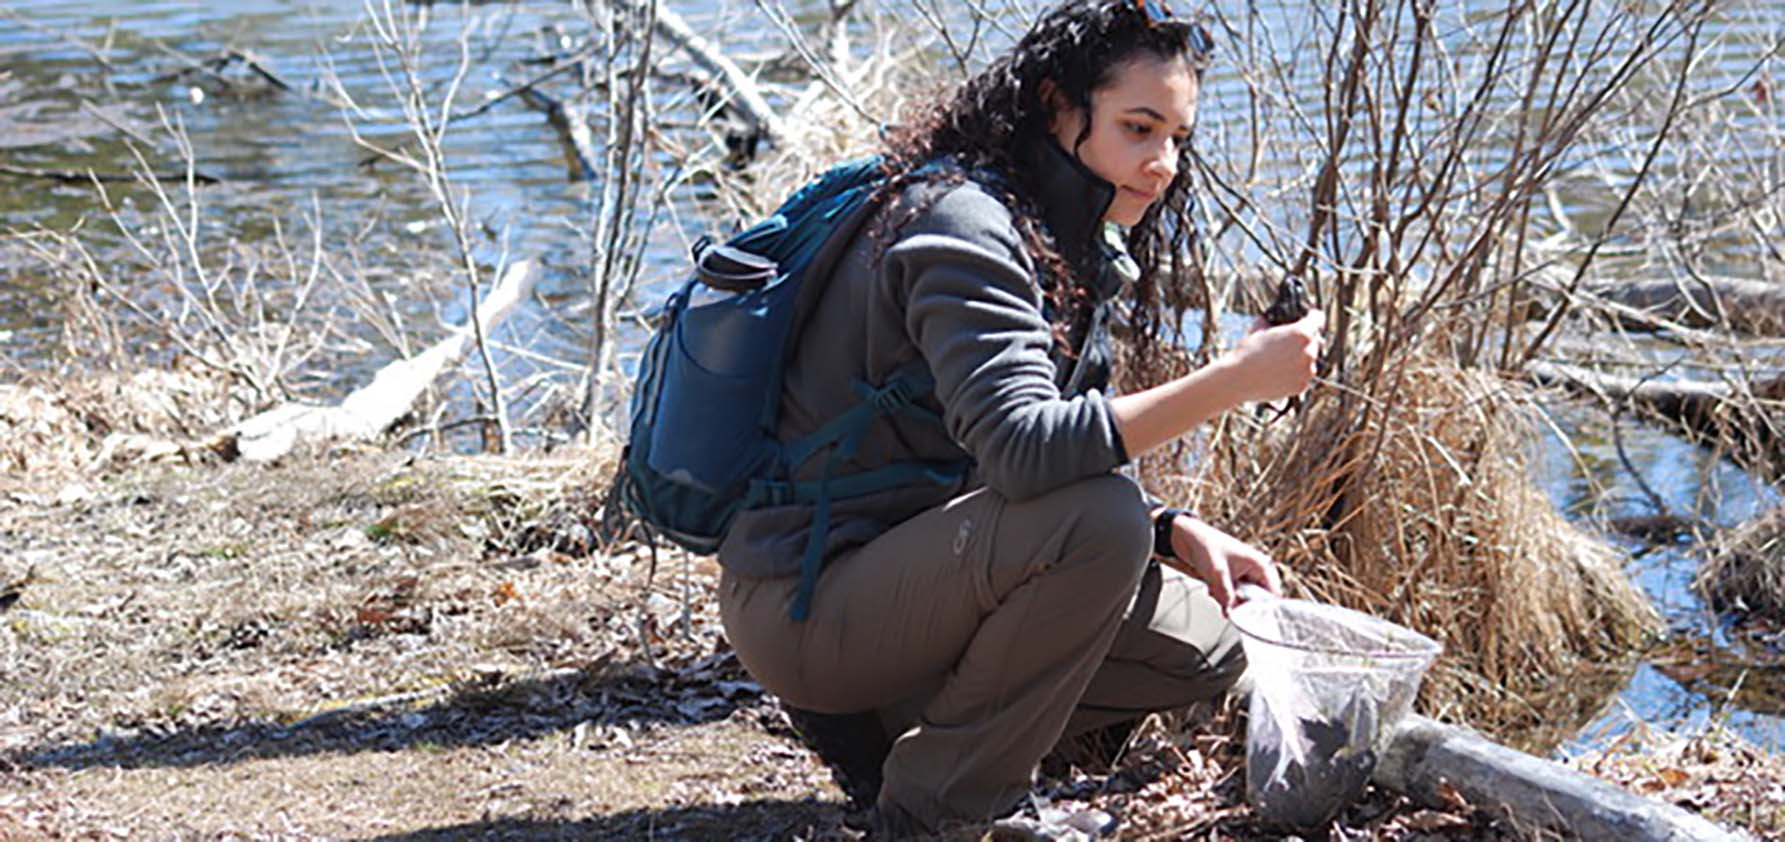 Melissa Morales '21 explores the animal life along a stream near her home in the Poconos.